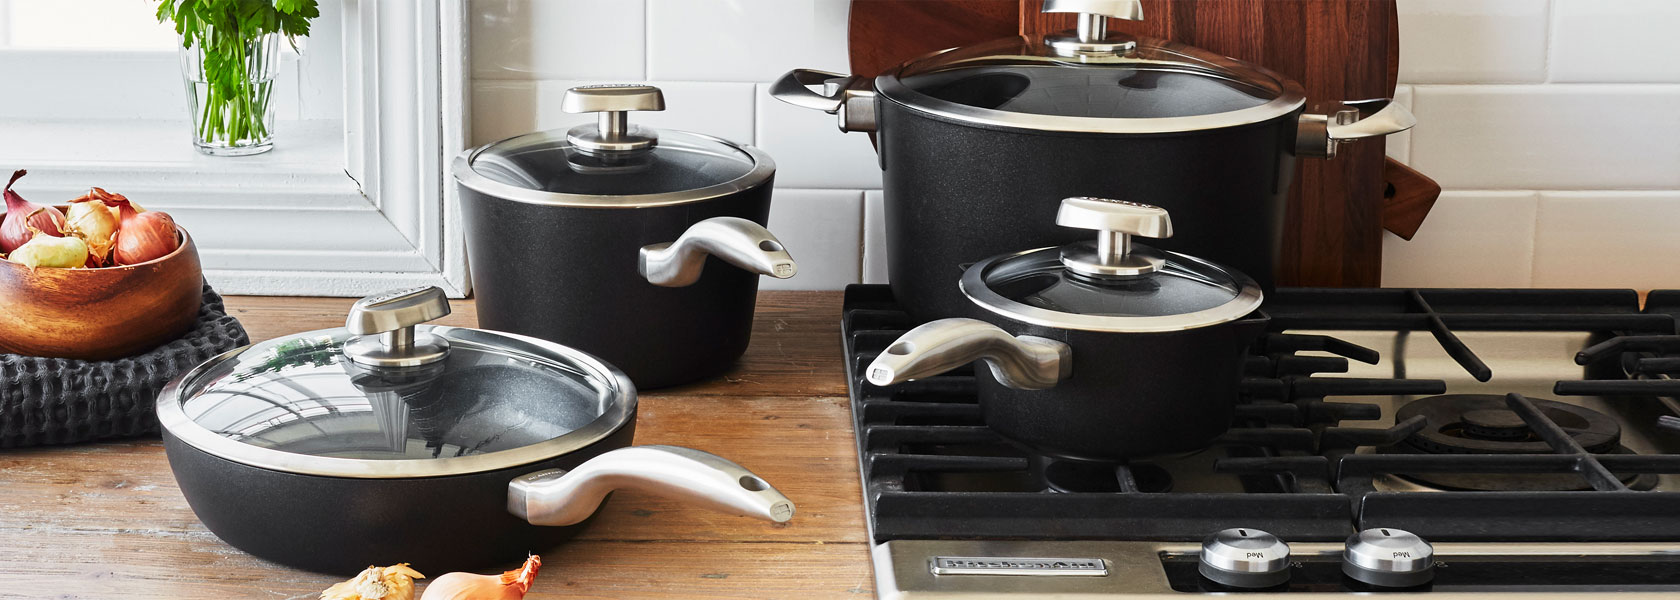 Scanpan gift with purchase of $200 or more.